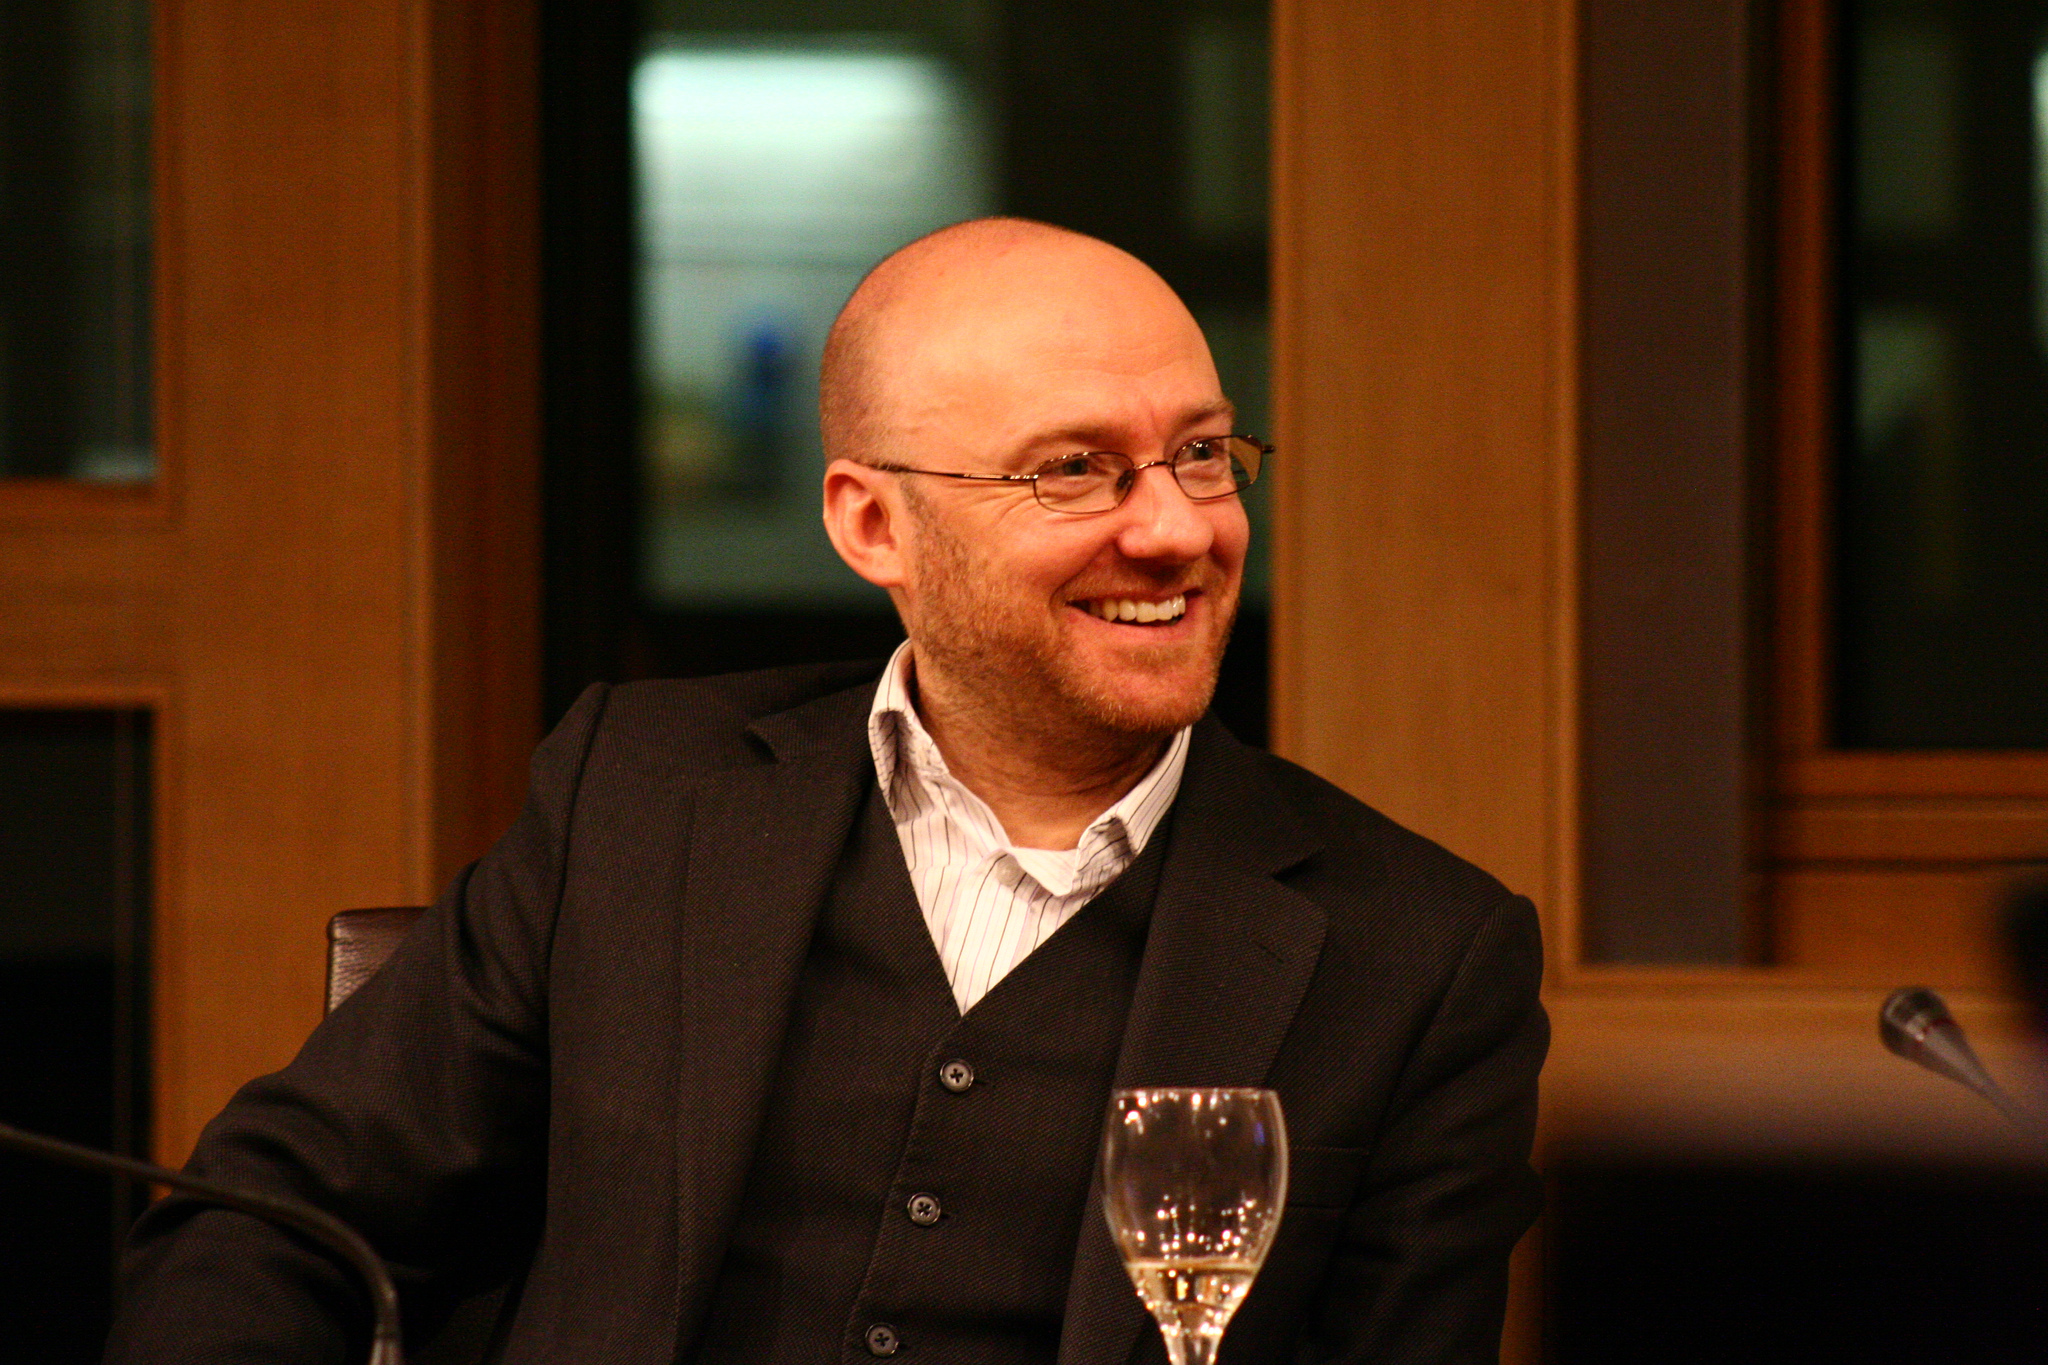 Patrick Harvie, Scottish Greens co-convener and MSP. Photo credit flickr user ICARB.org http://tinyurl.com/kyg5dog Creative Commons license: https://creativecommons.org/licenses/by-nc-sa/2.0/